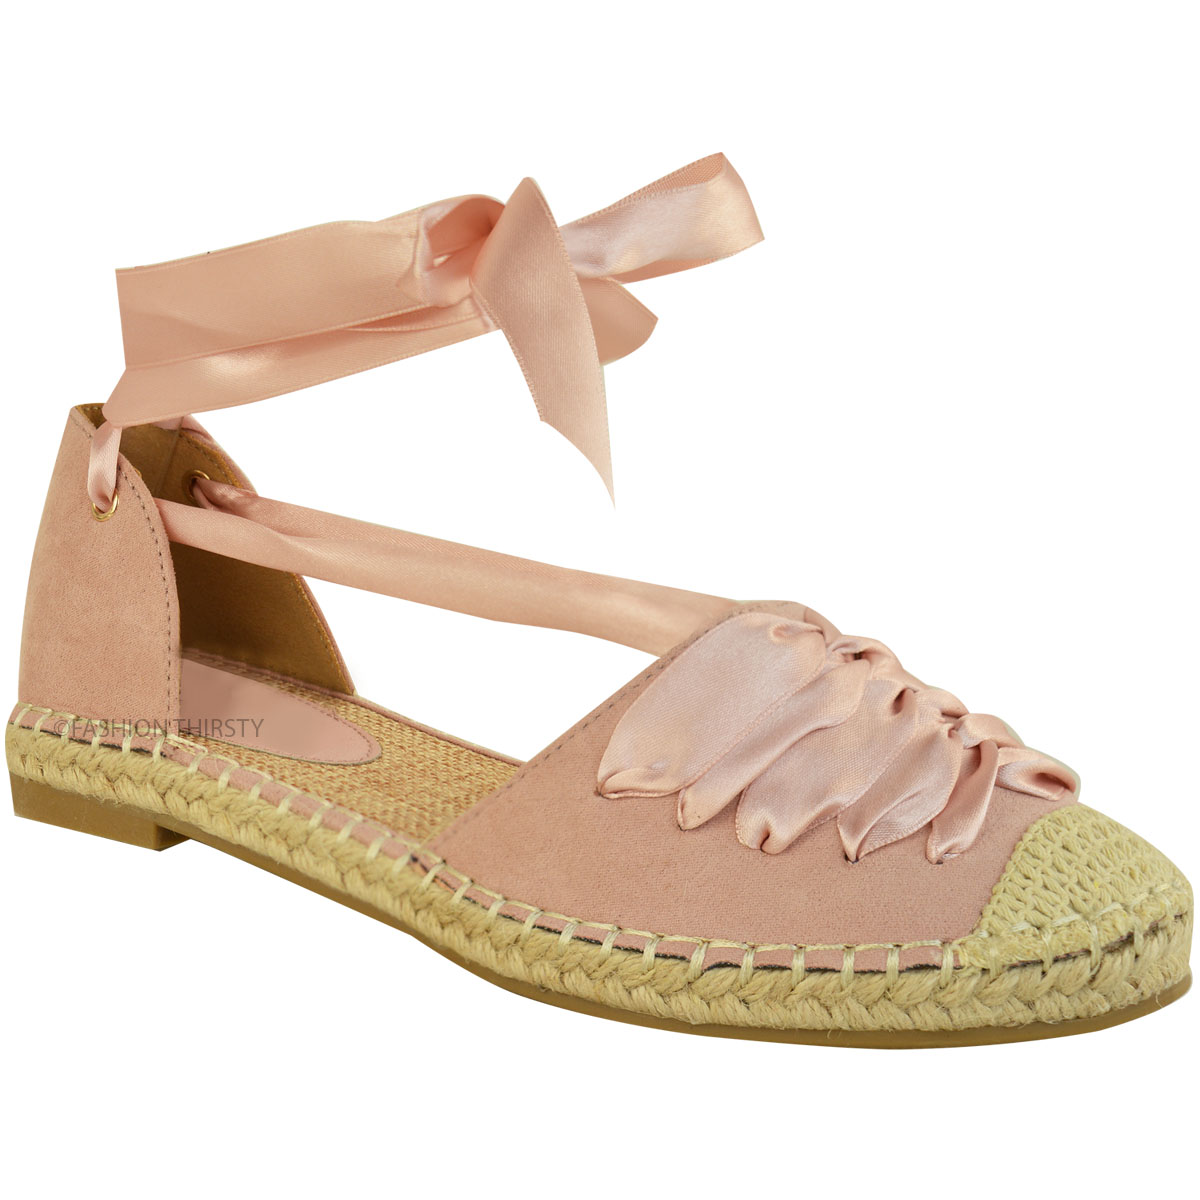 Womens Ladies Flat Low Heel Espadrilles Lace Tie Up Canvas ...